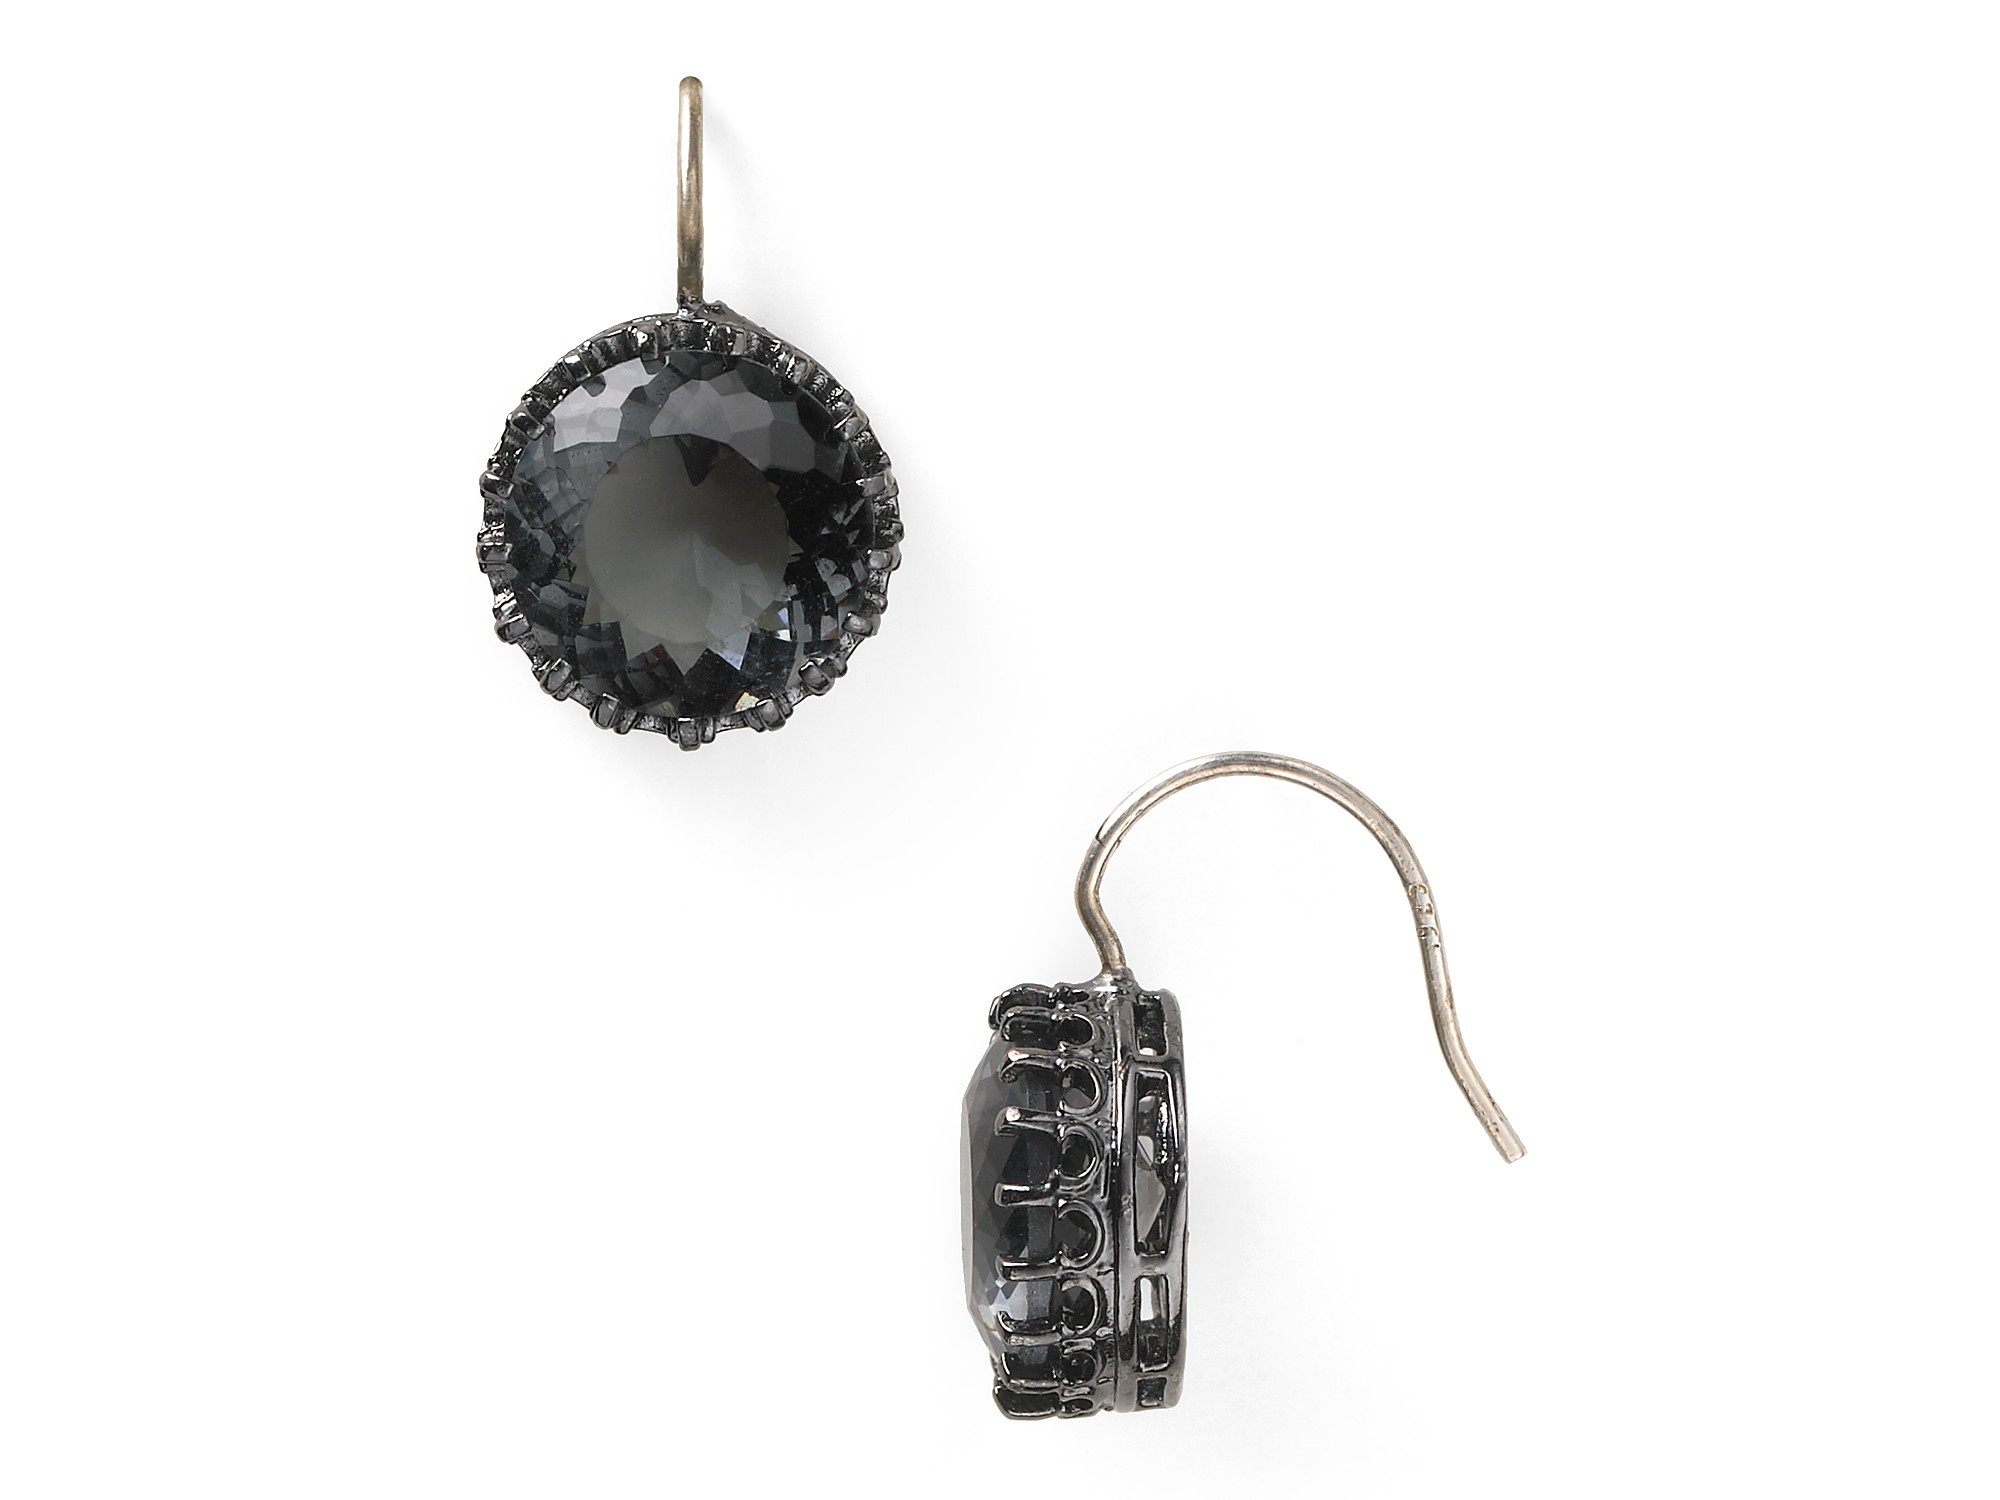 Juicy couture Solitaire Drop Earrings in Black